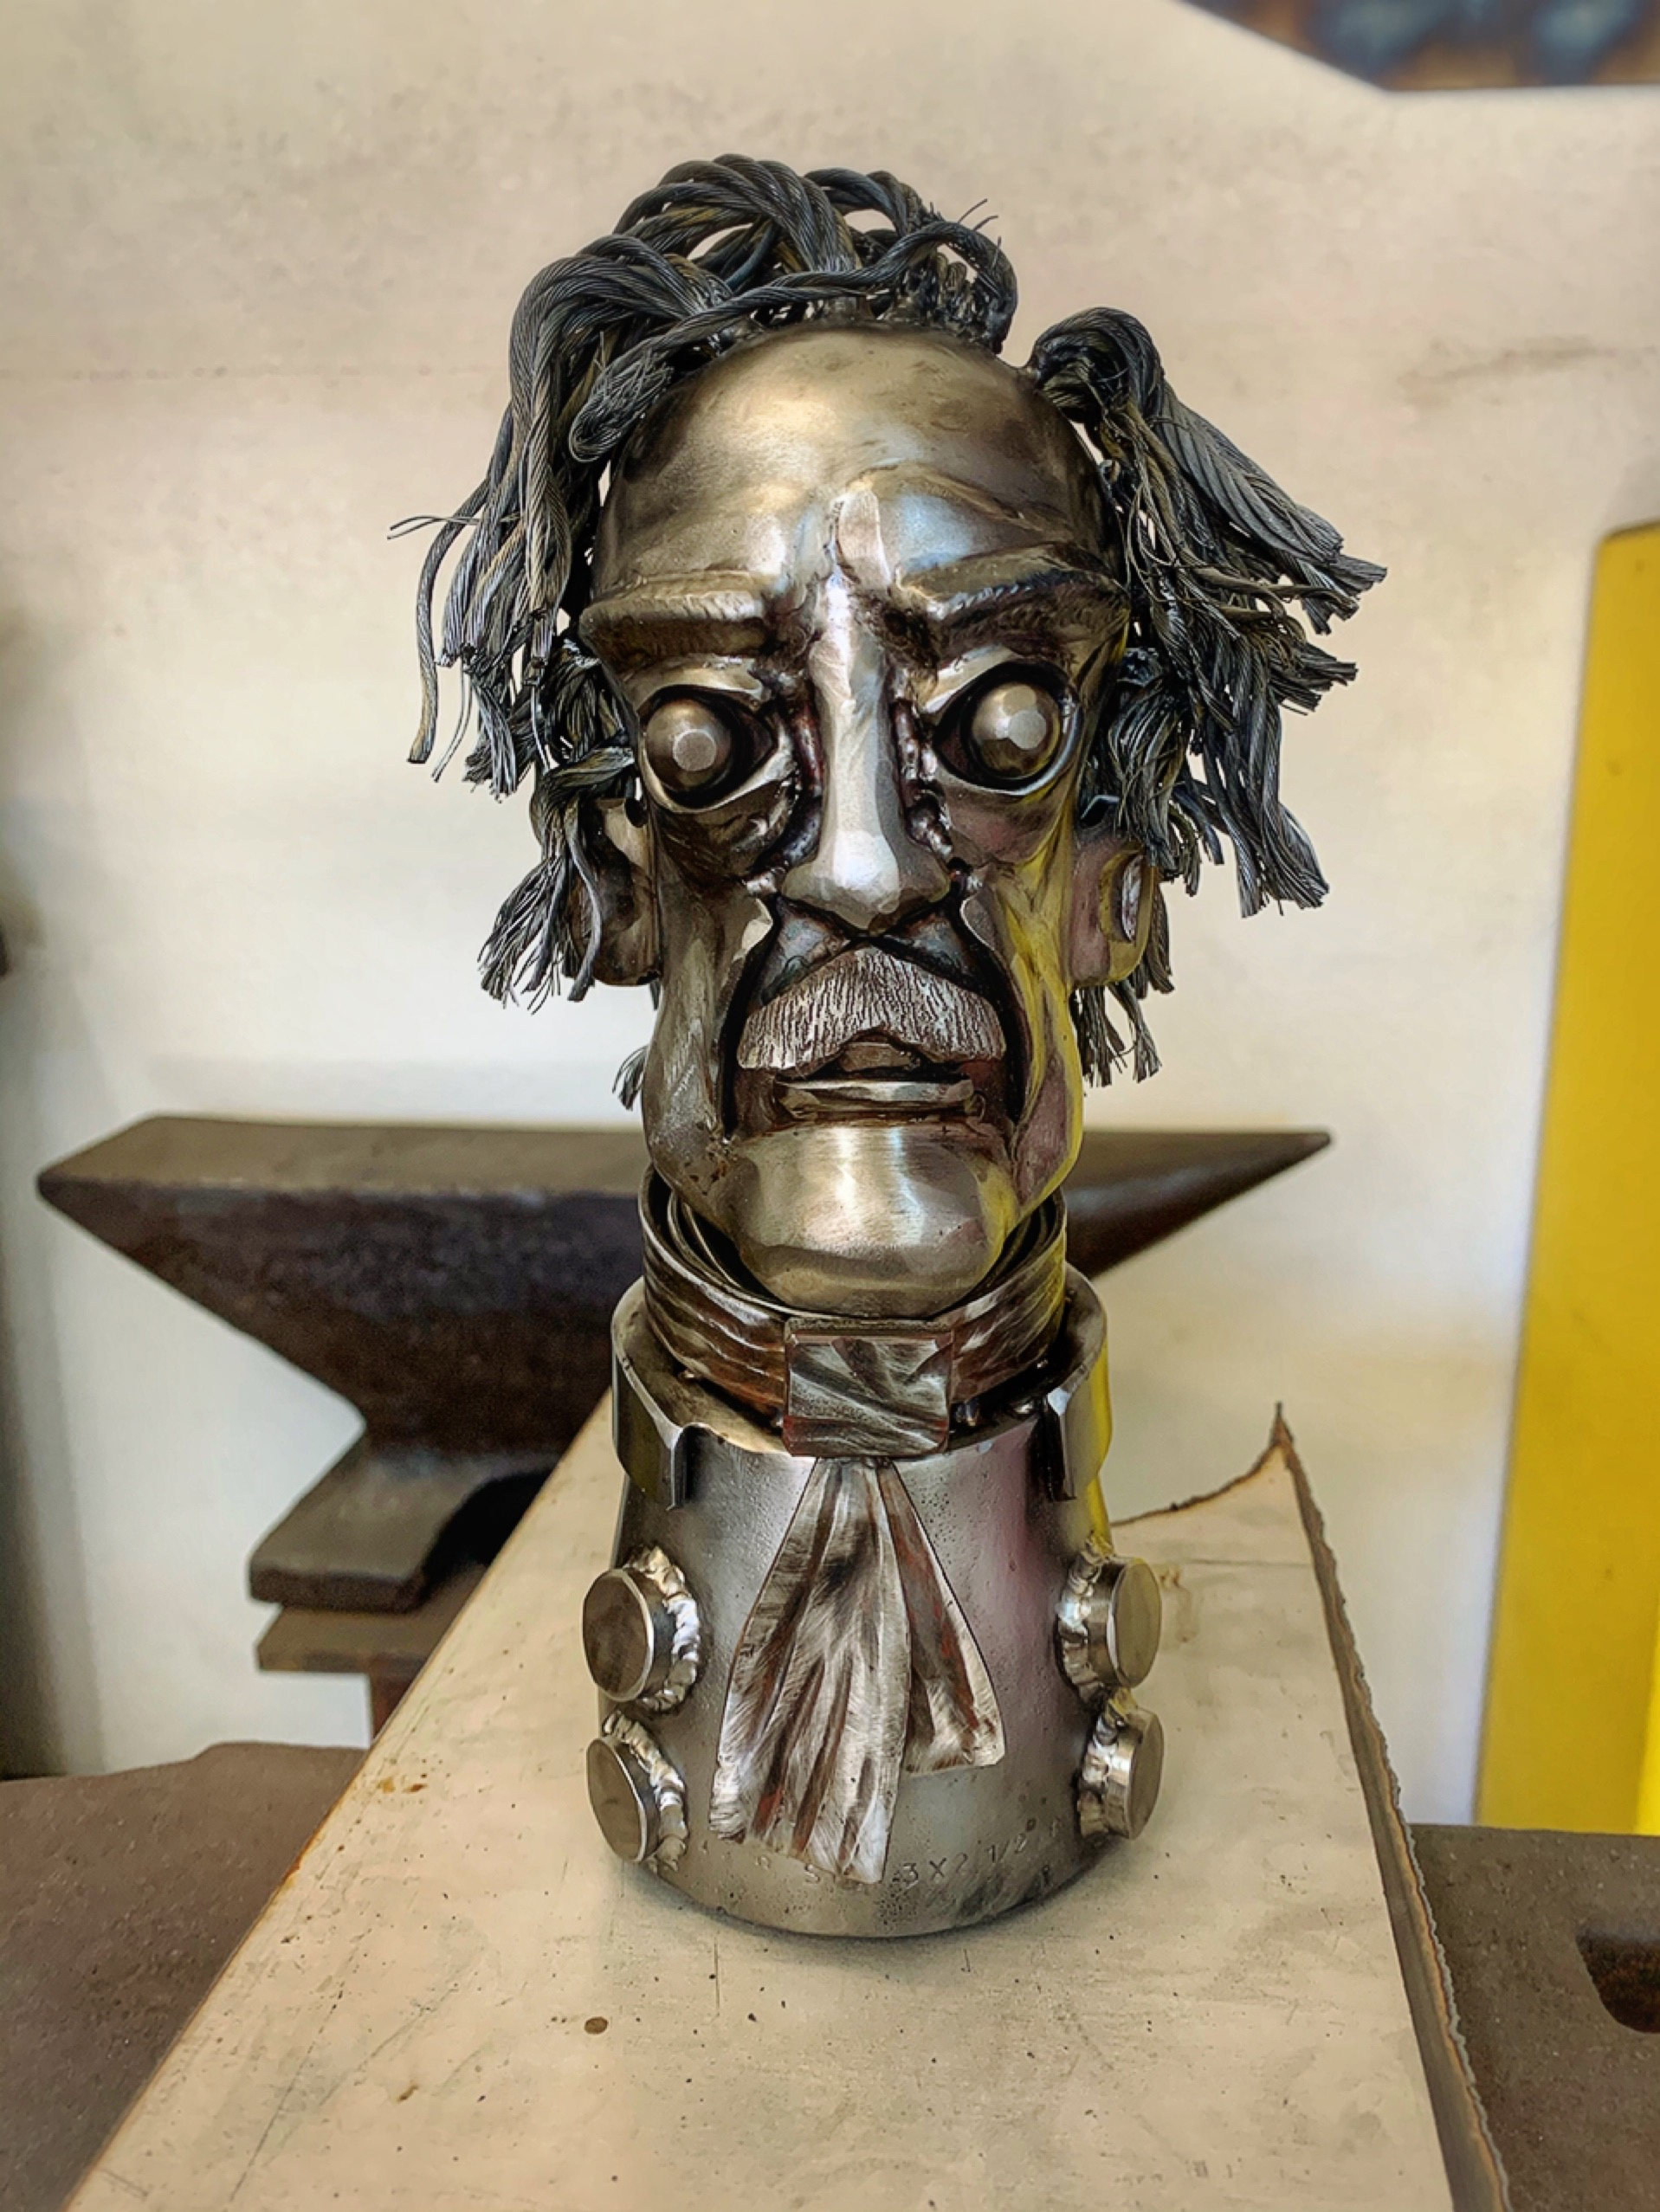 Edgar Allan Poe sculpture